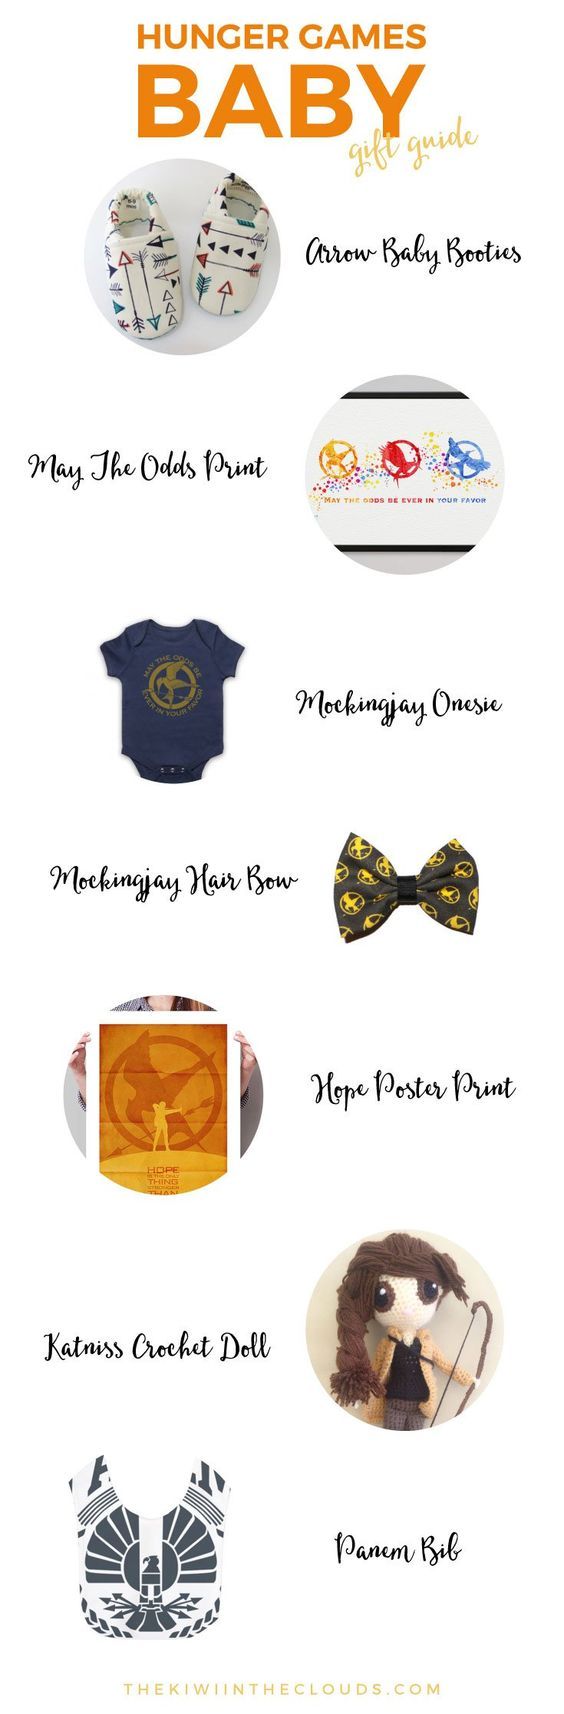 Hunger Games Baby Gift Guide   If you can't get enough of the Hunger Games and have a little tribute on the way, then click through to check out the cutest Hunger Games products for little ones.